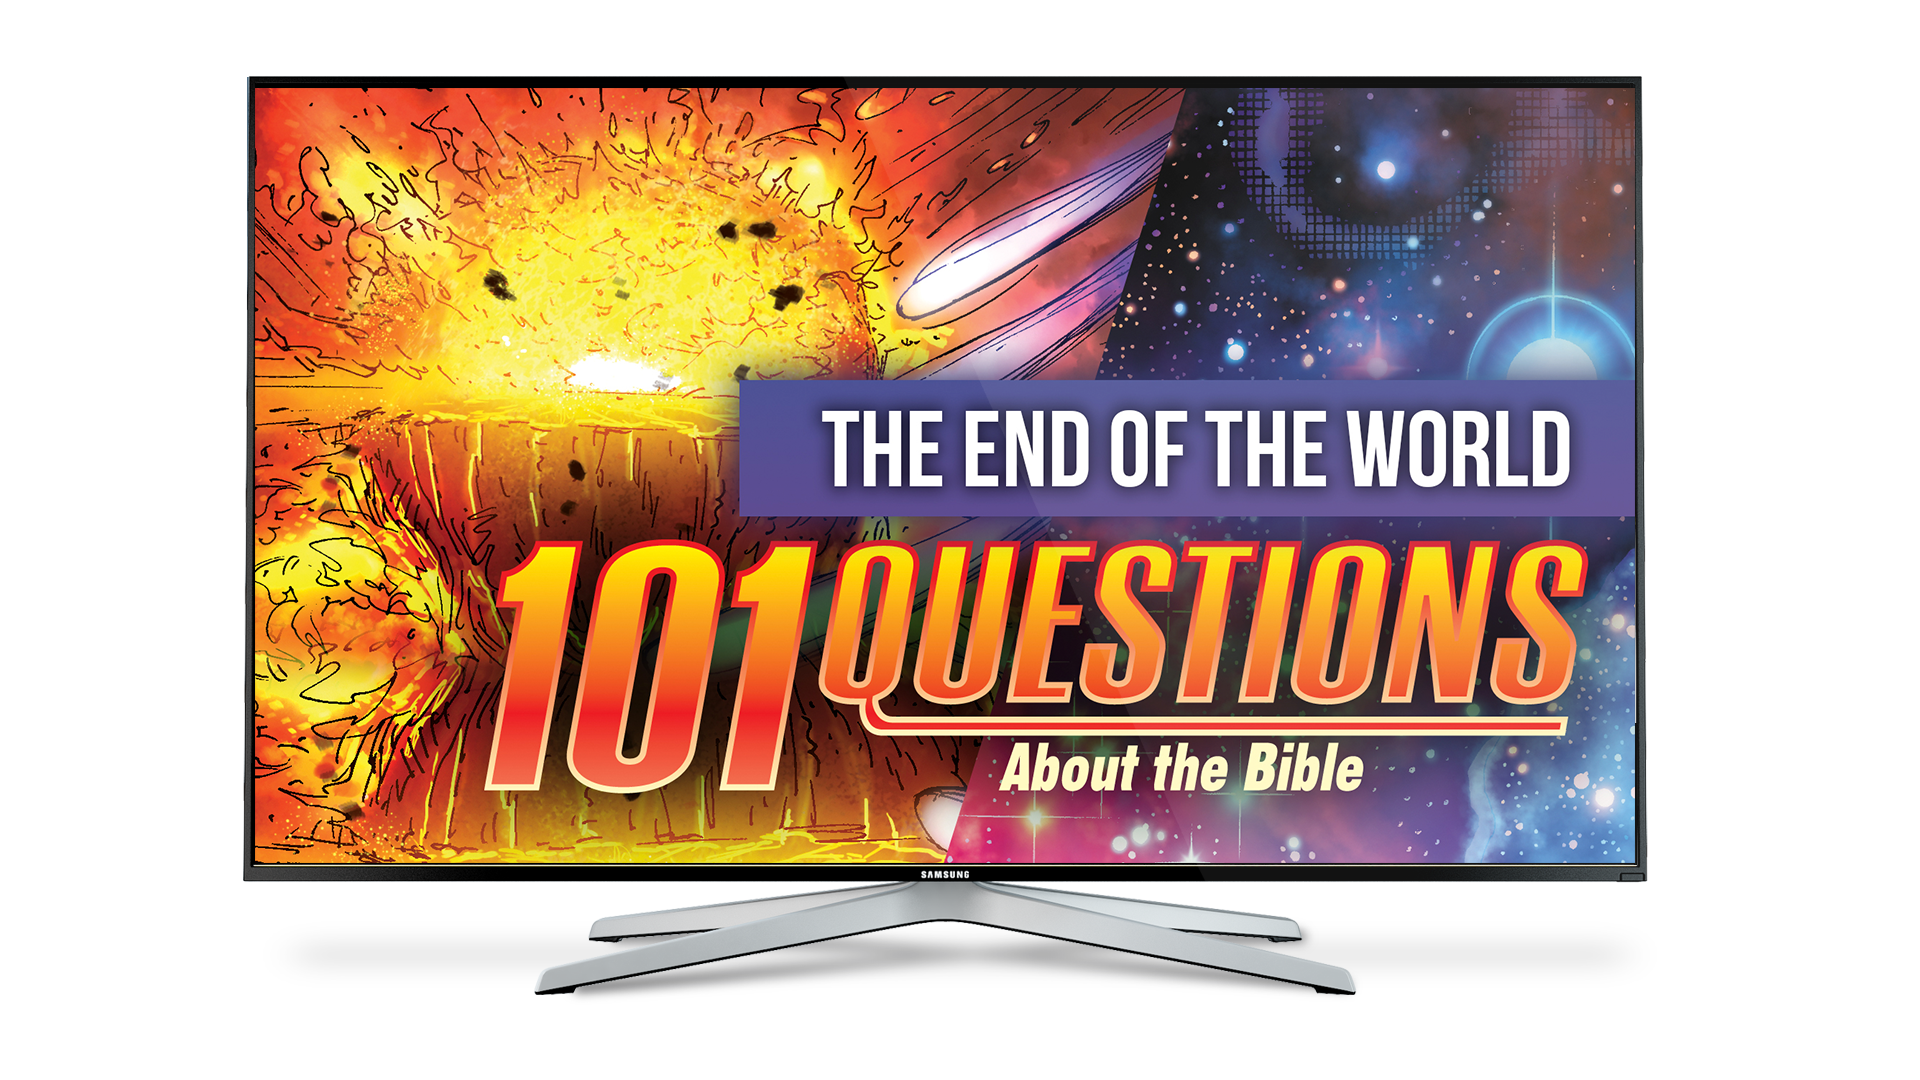 101 Questions #18: What does the Bible say about the end of the world? - Kingstone Comics